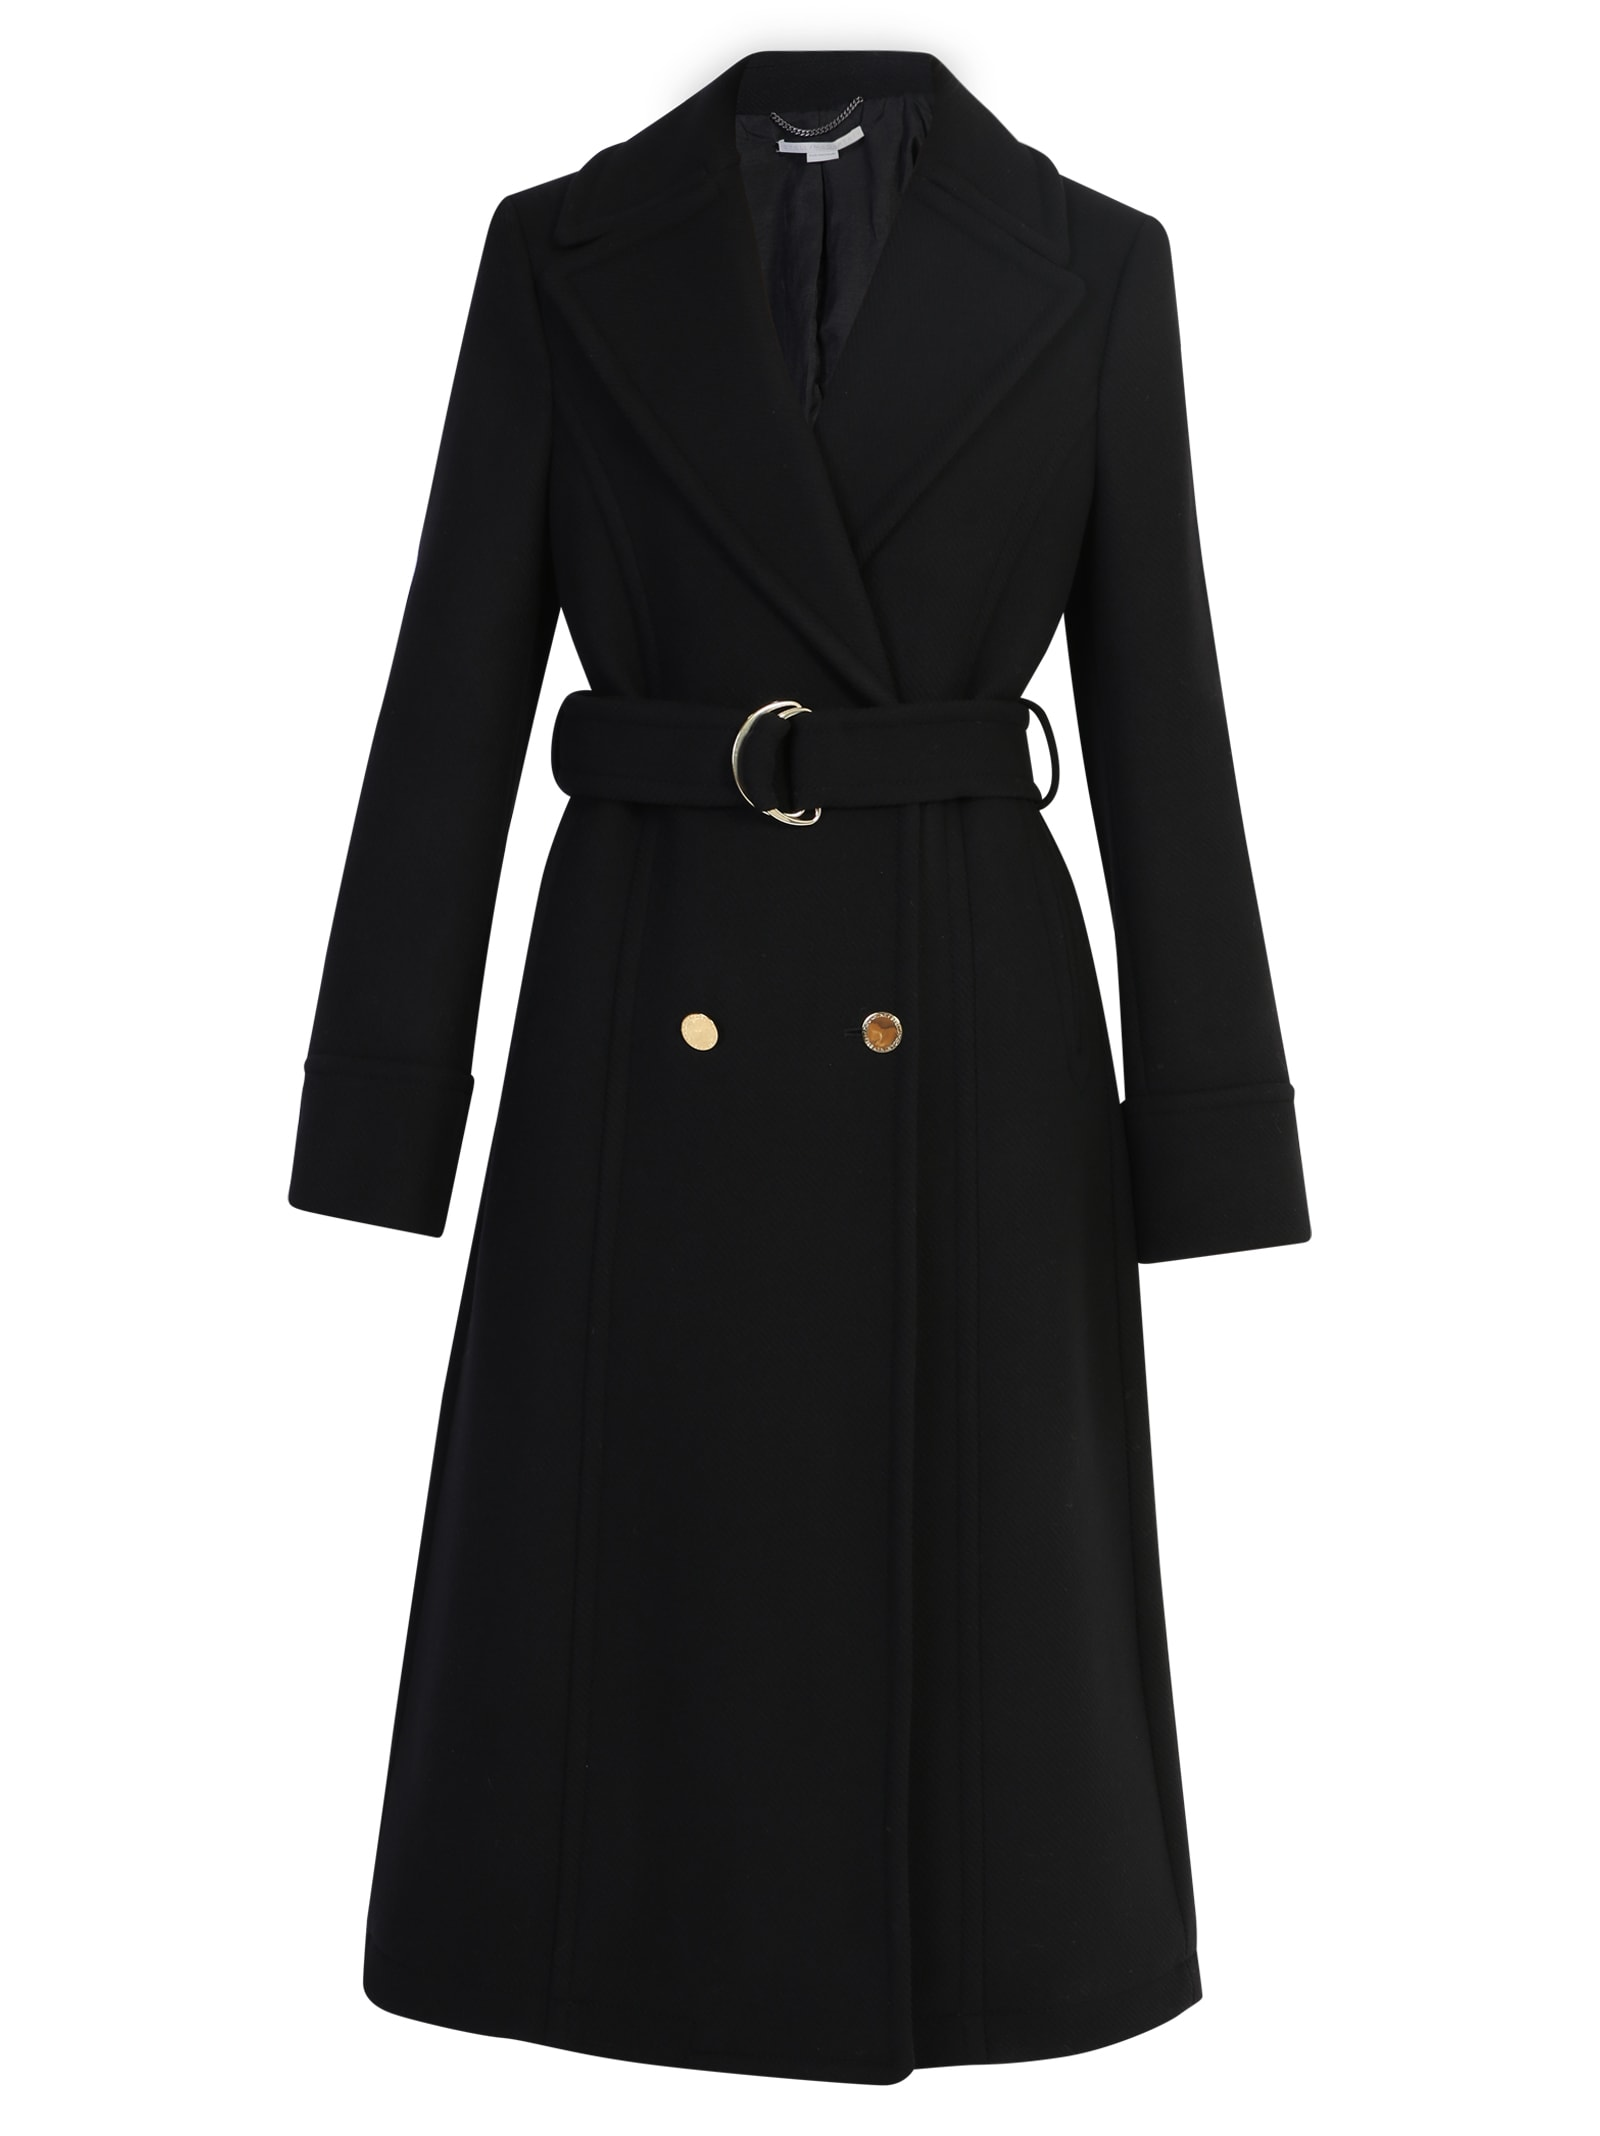 Stella McCartney Double-breasted Coat